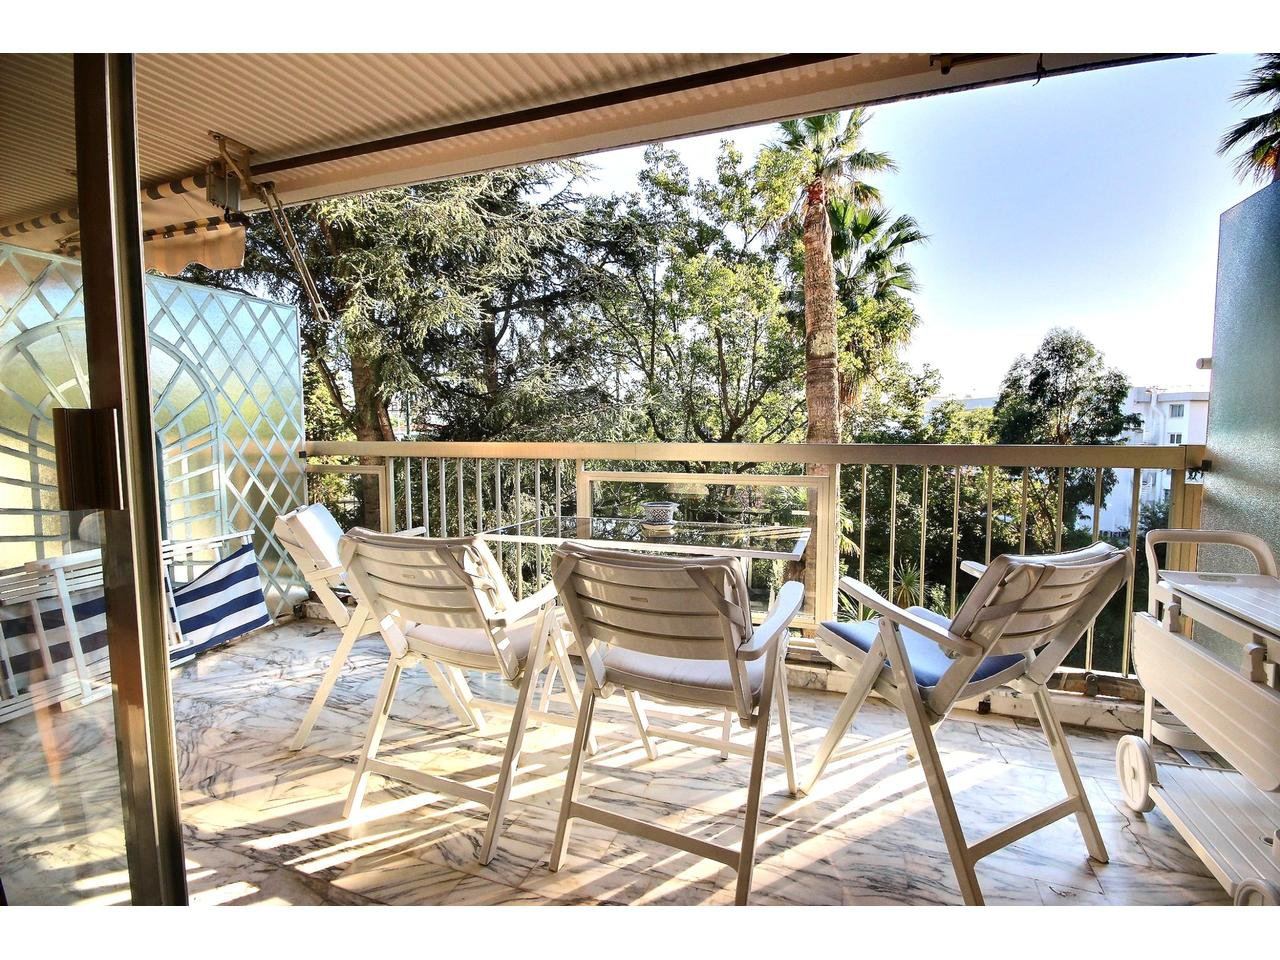 1 bedrom apartment for sale in Cannes Basse Californie